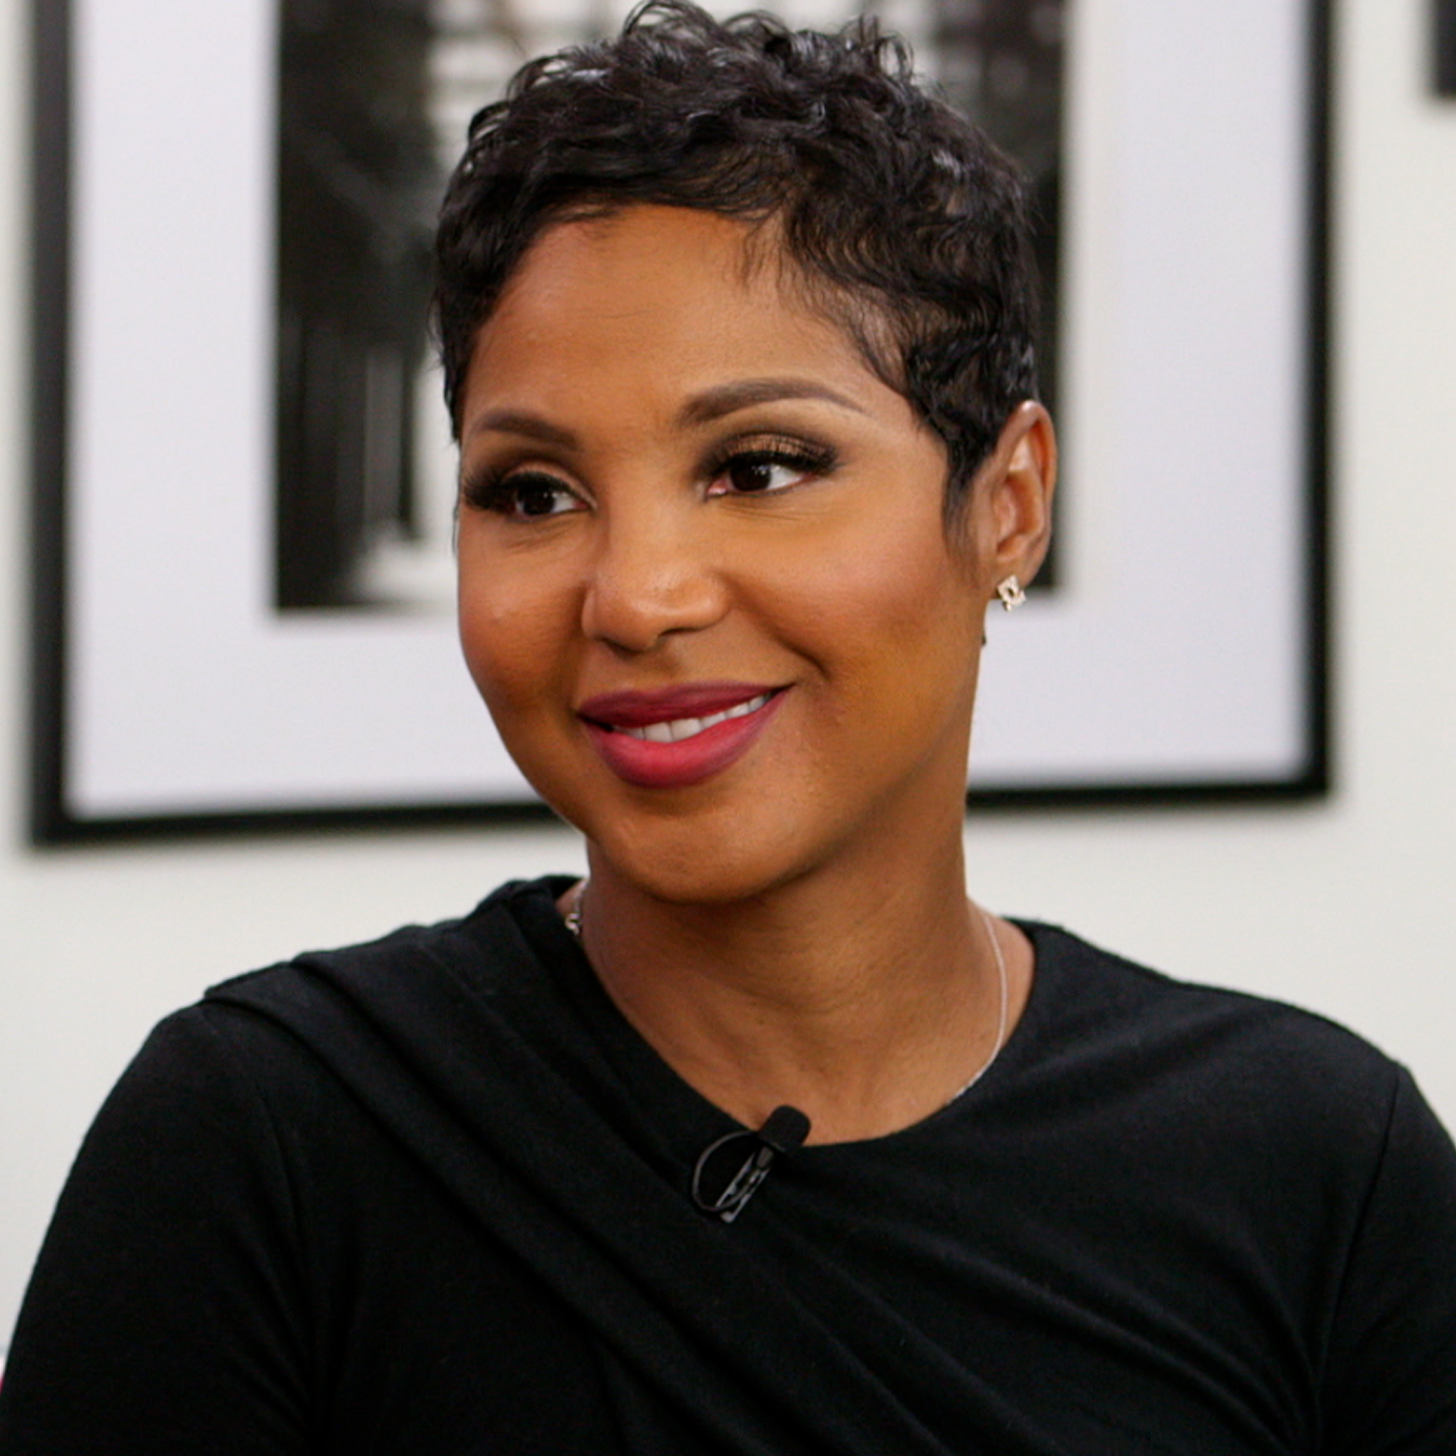 toni braxton's sister tamar braxton, back wit new song & new album